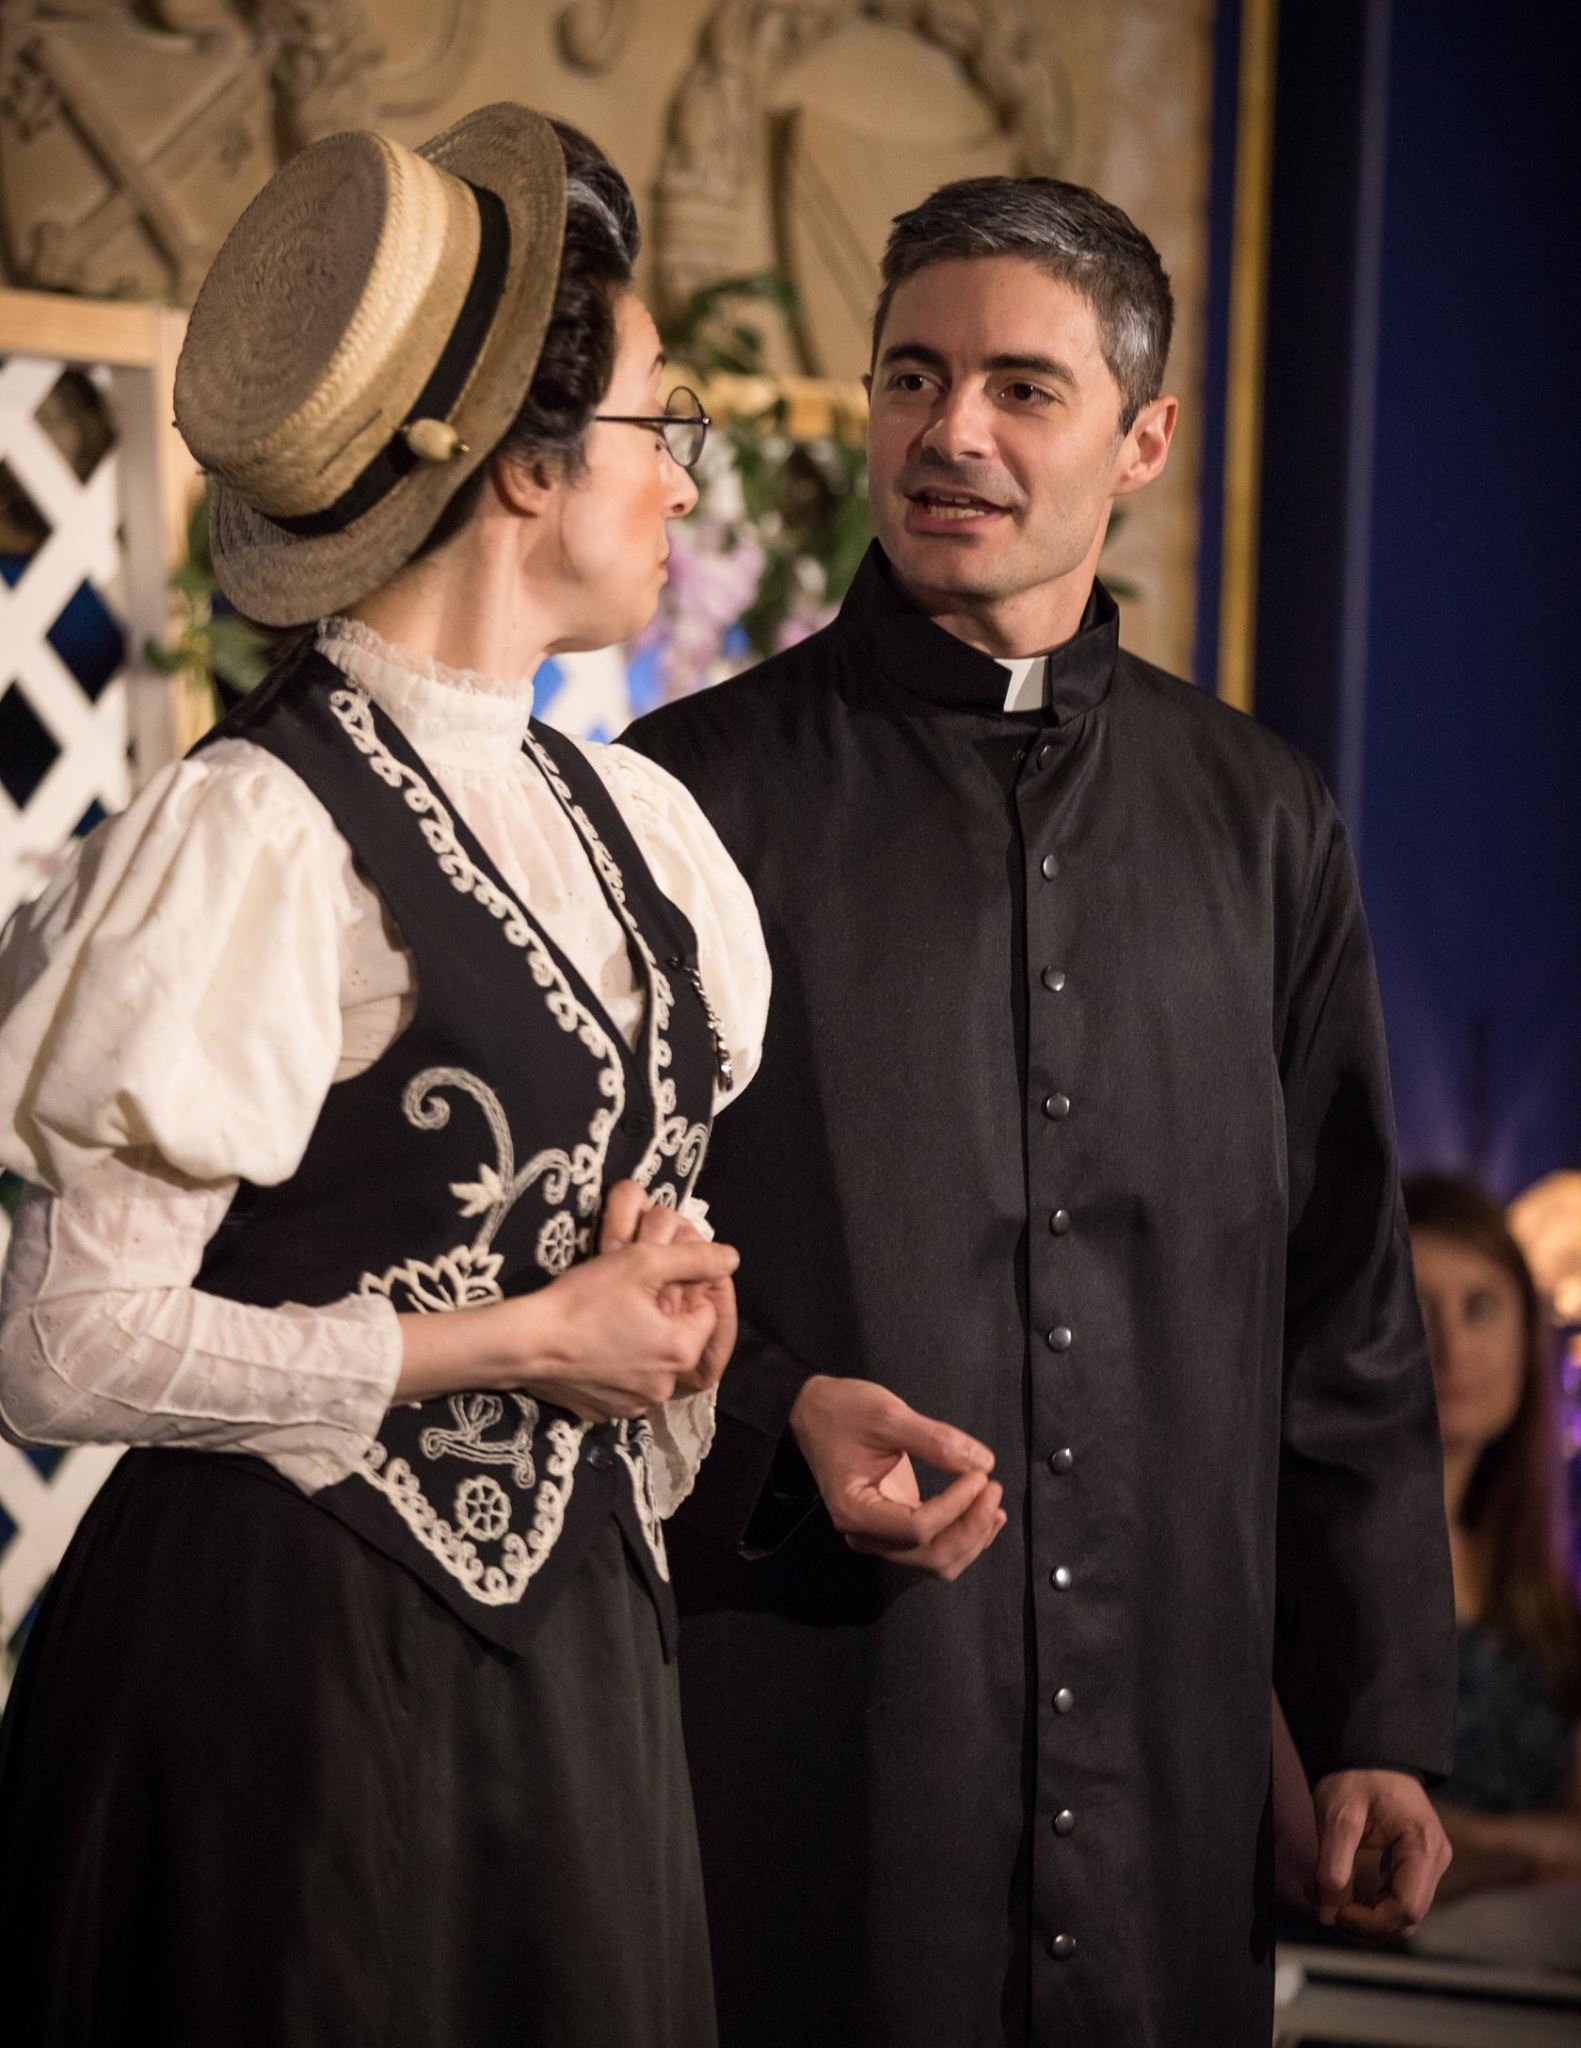 Angela Beyer as Miss Prism and Eric Ryan as Dr. Chasuble